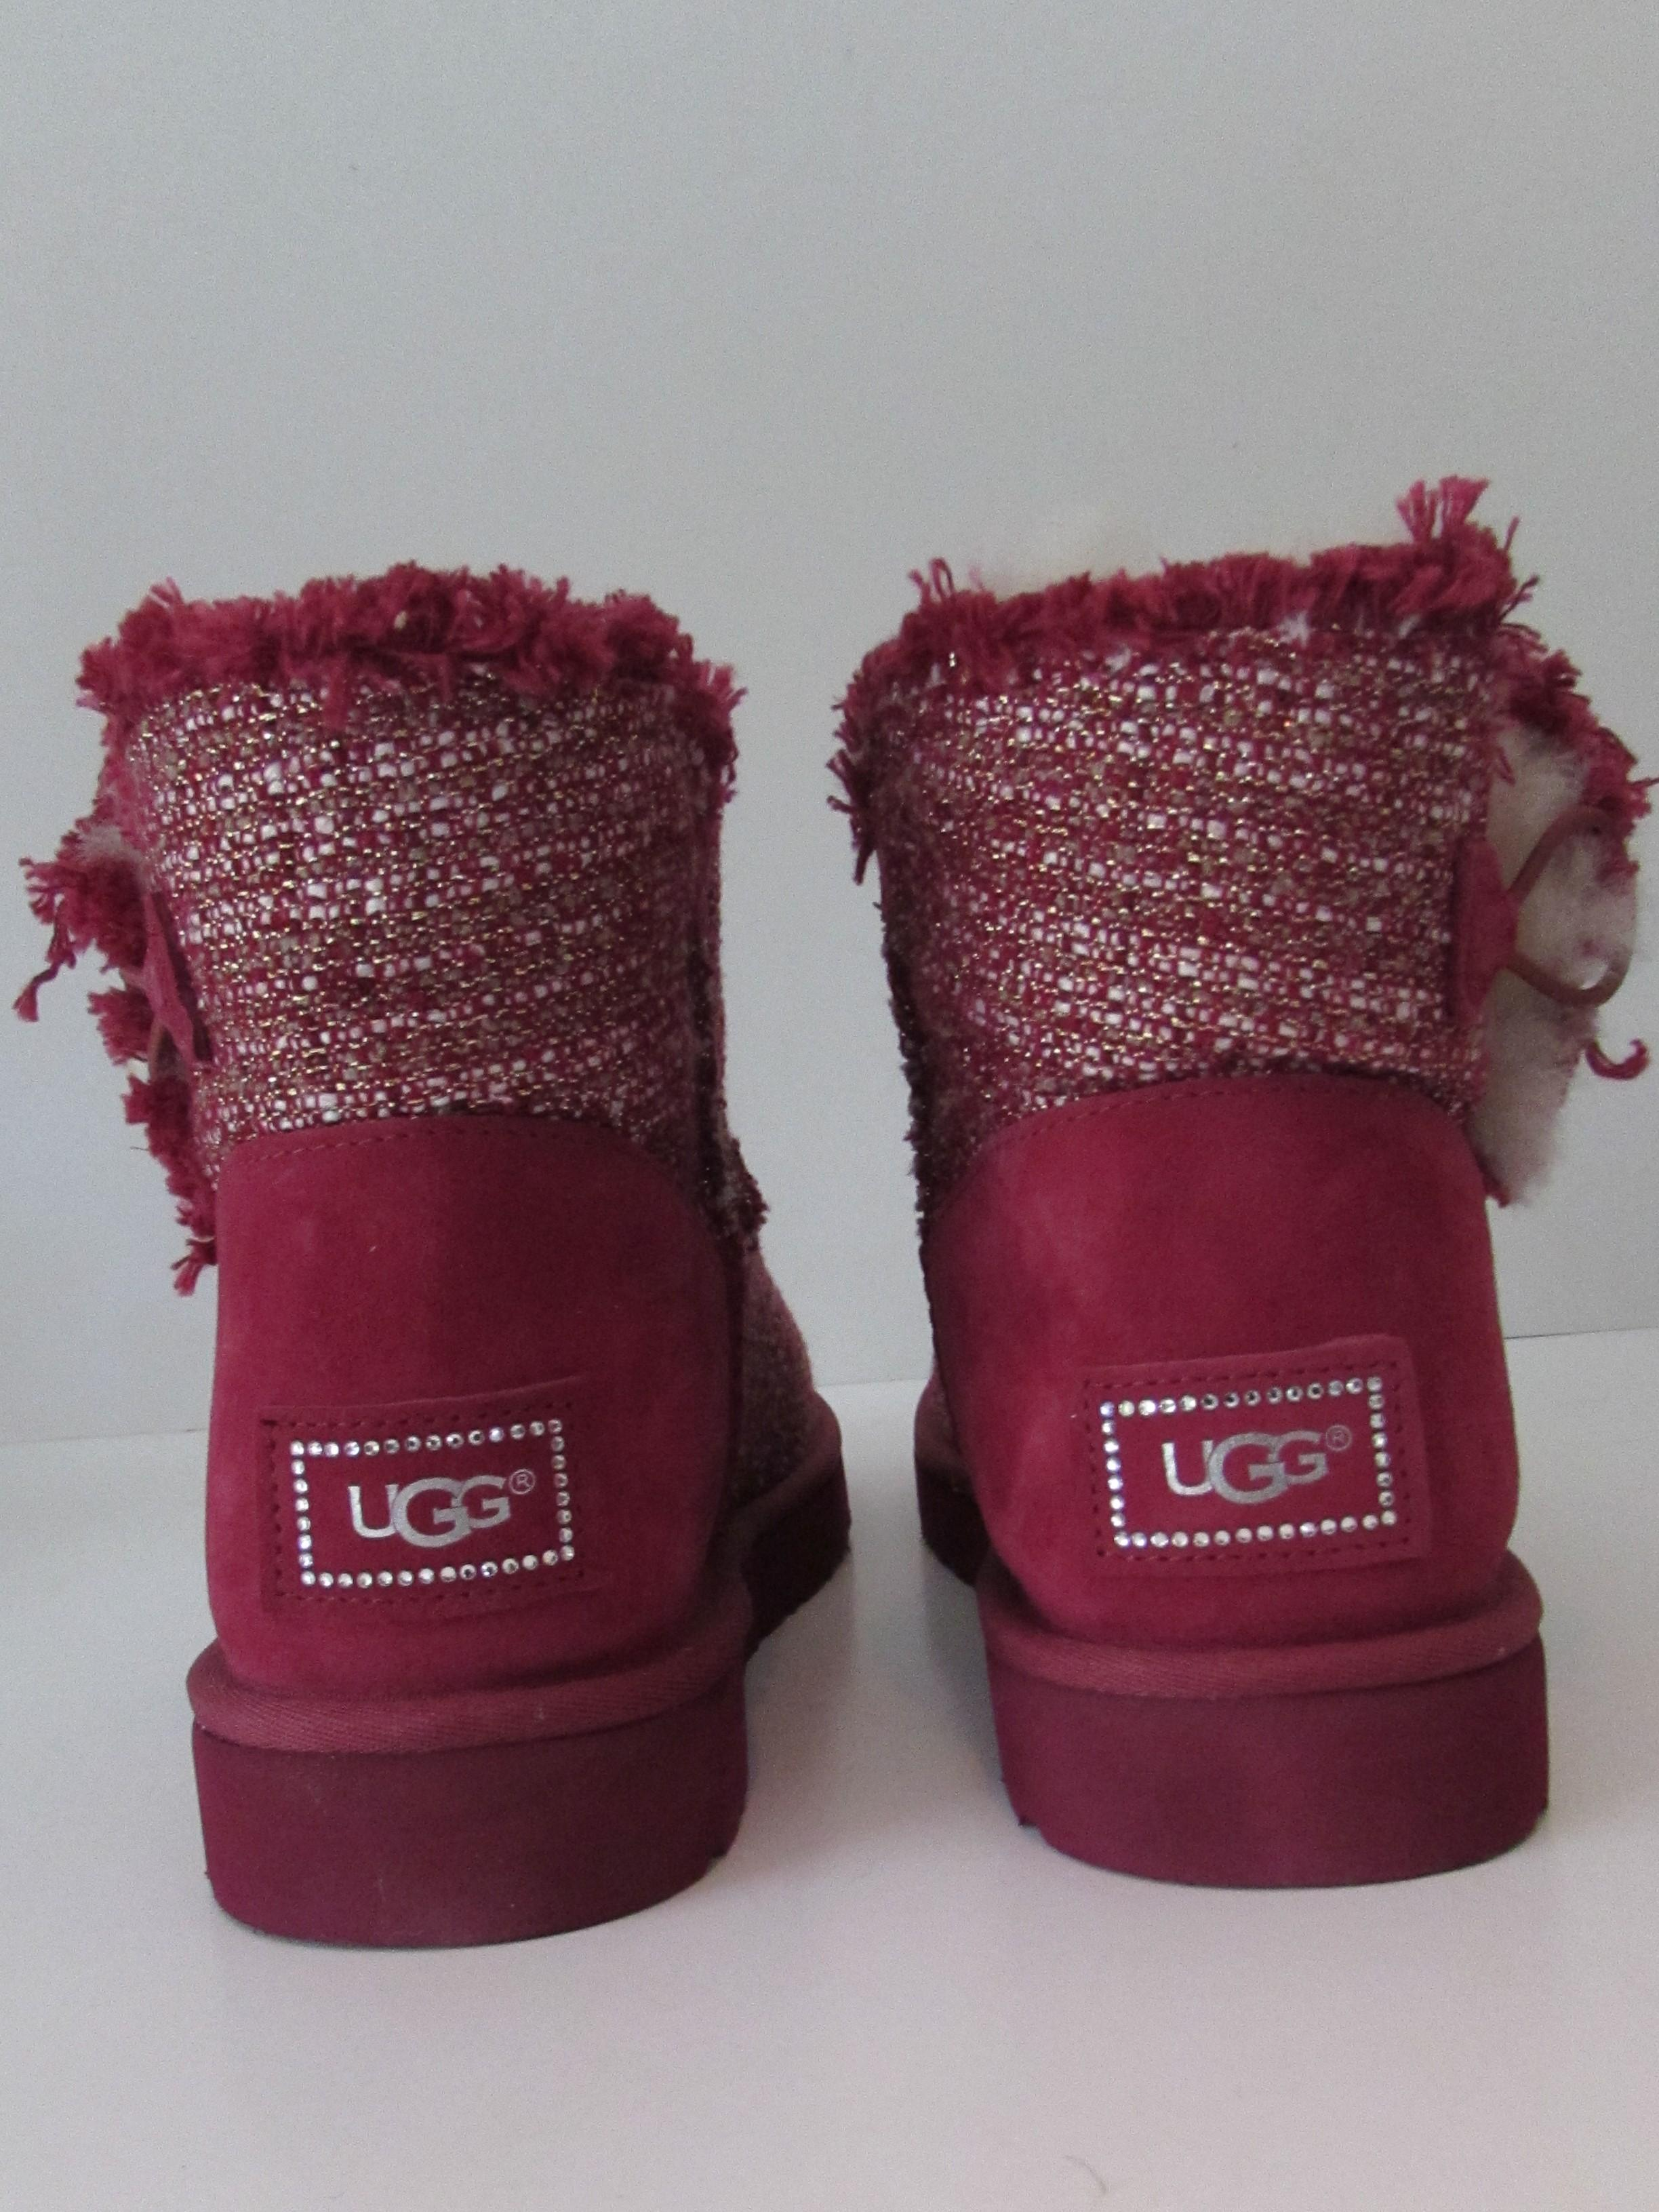 e632b005816 canada ugg australia mini bailey button fancy booties heels bcf9f aac9b